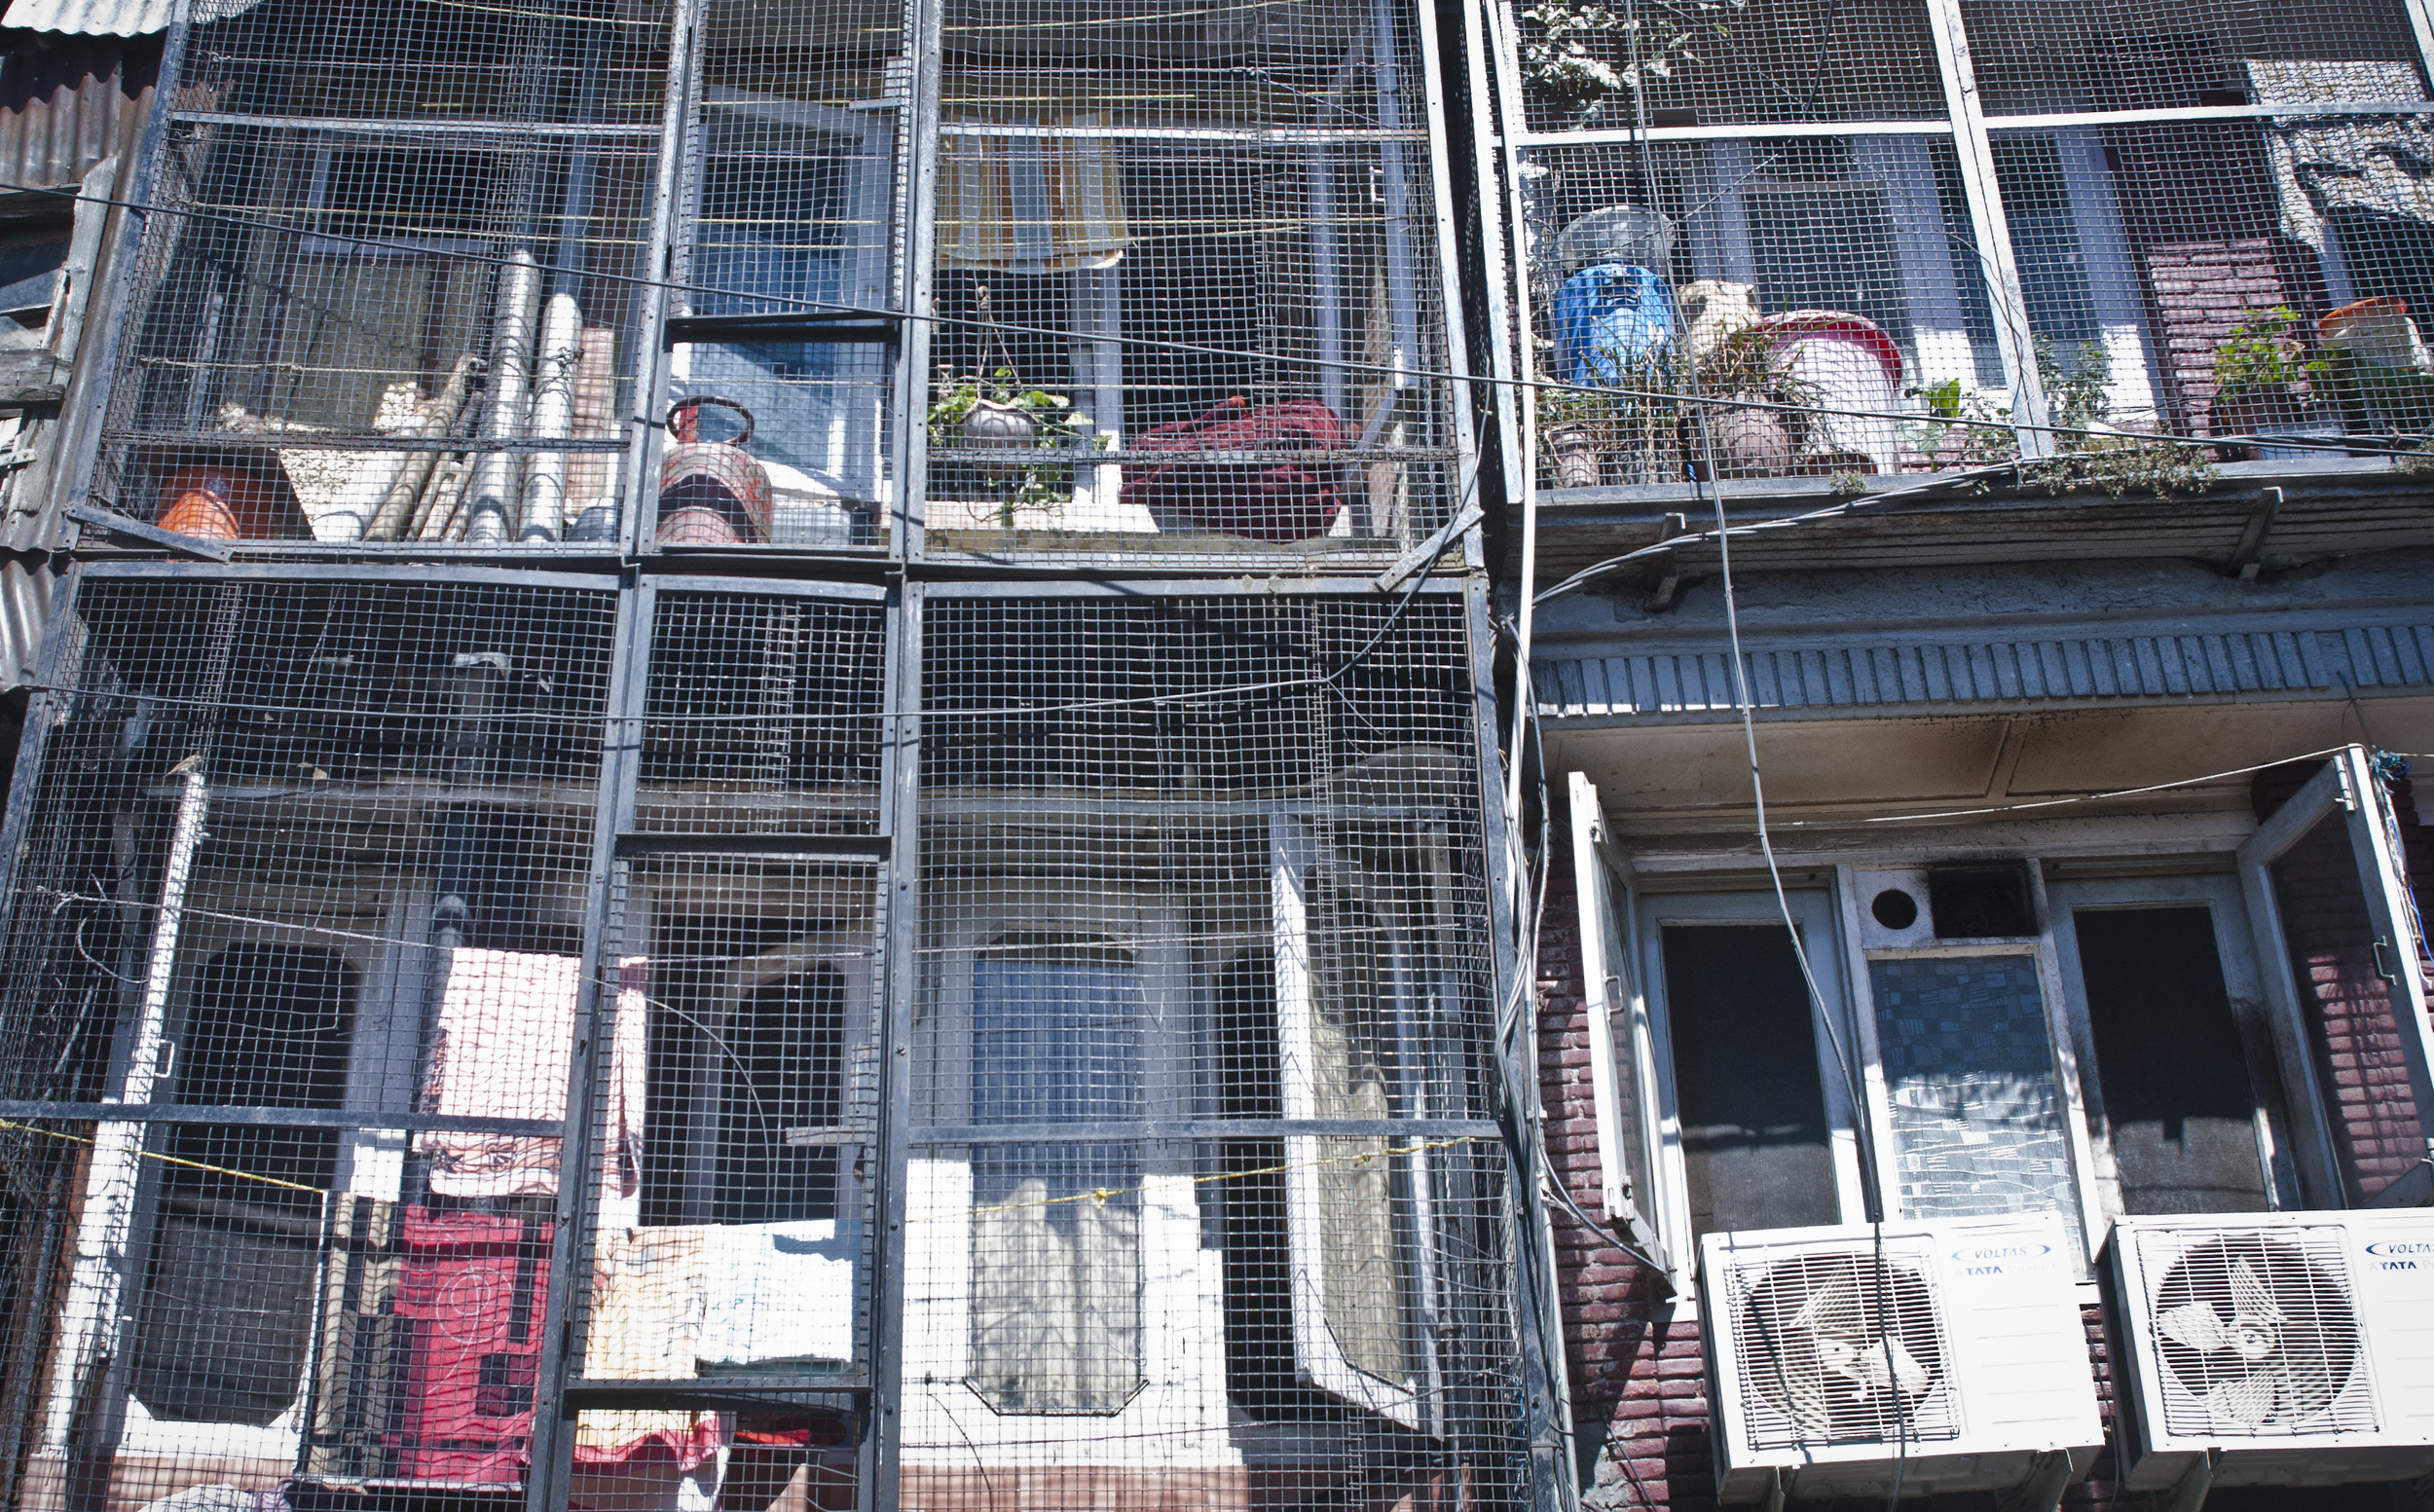 Cages are put around porches to protect homes and belongings from monkey intruders